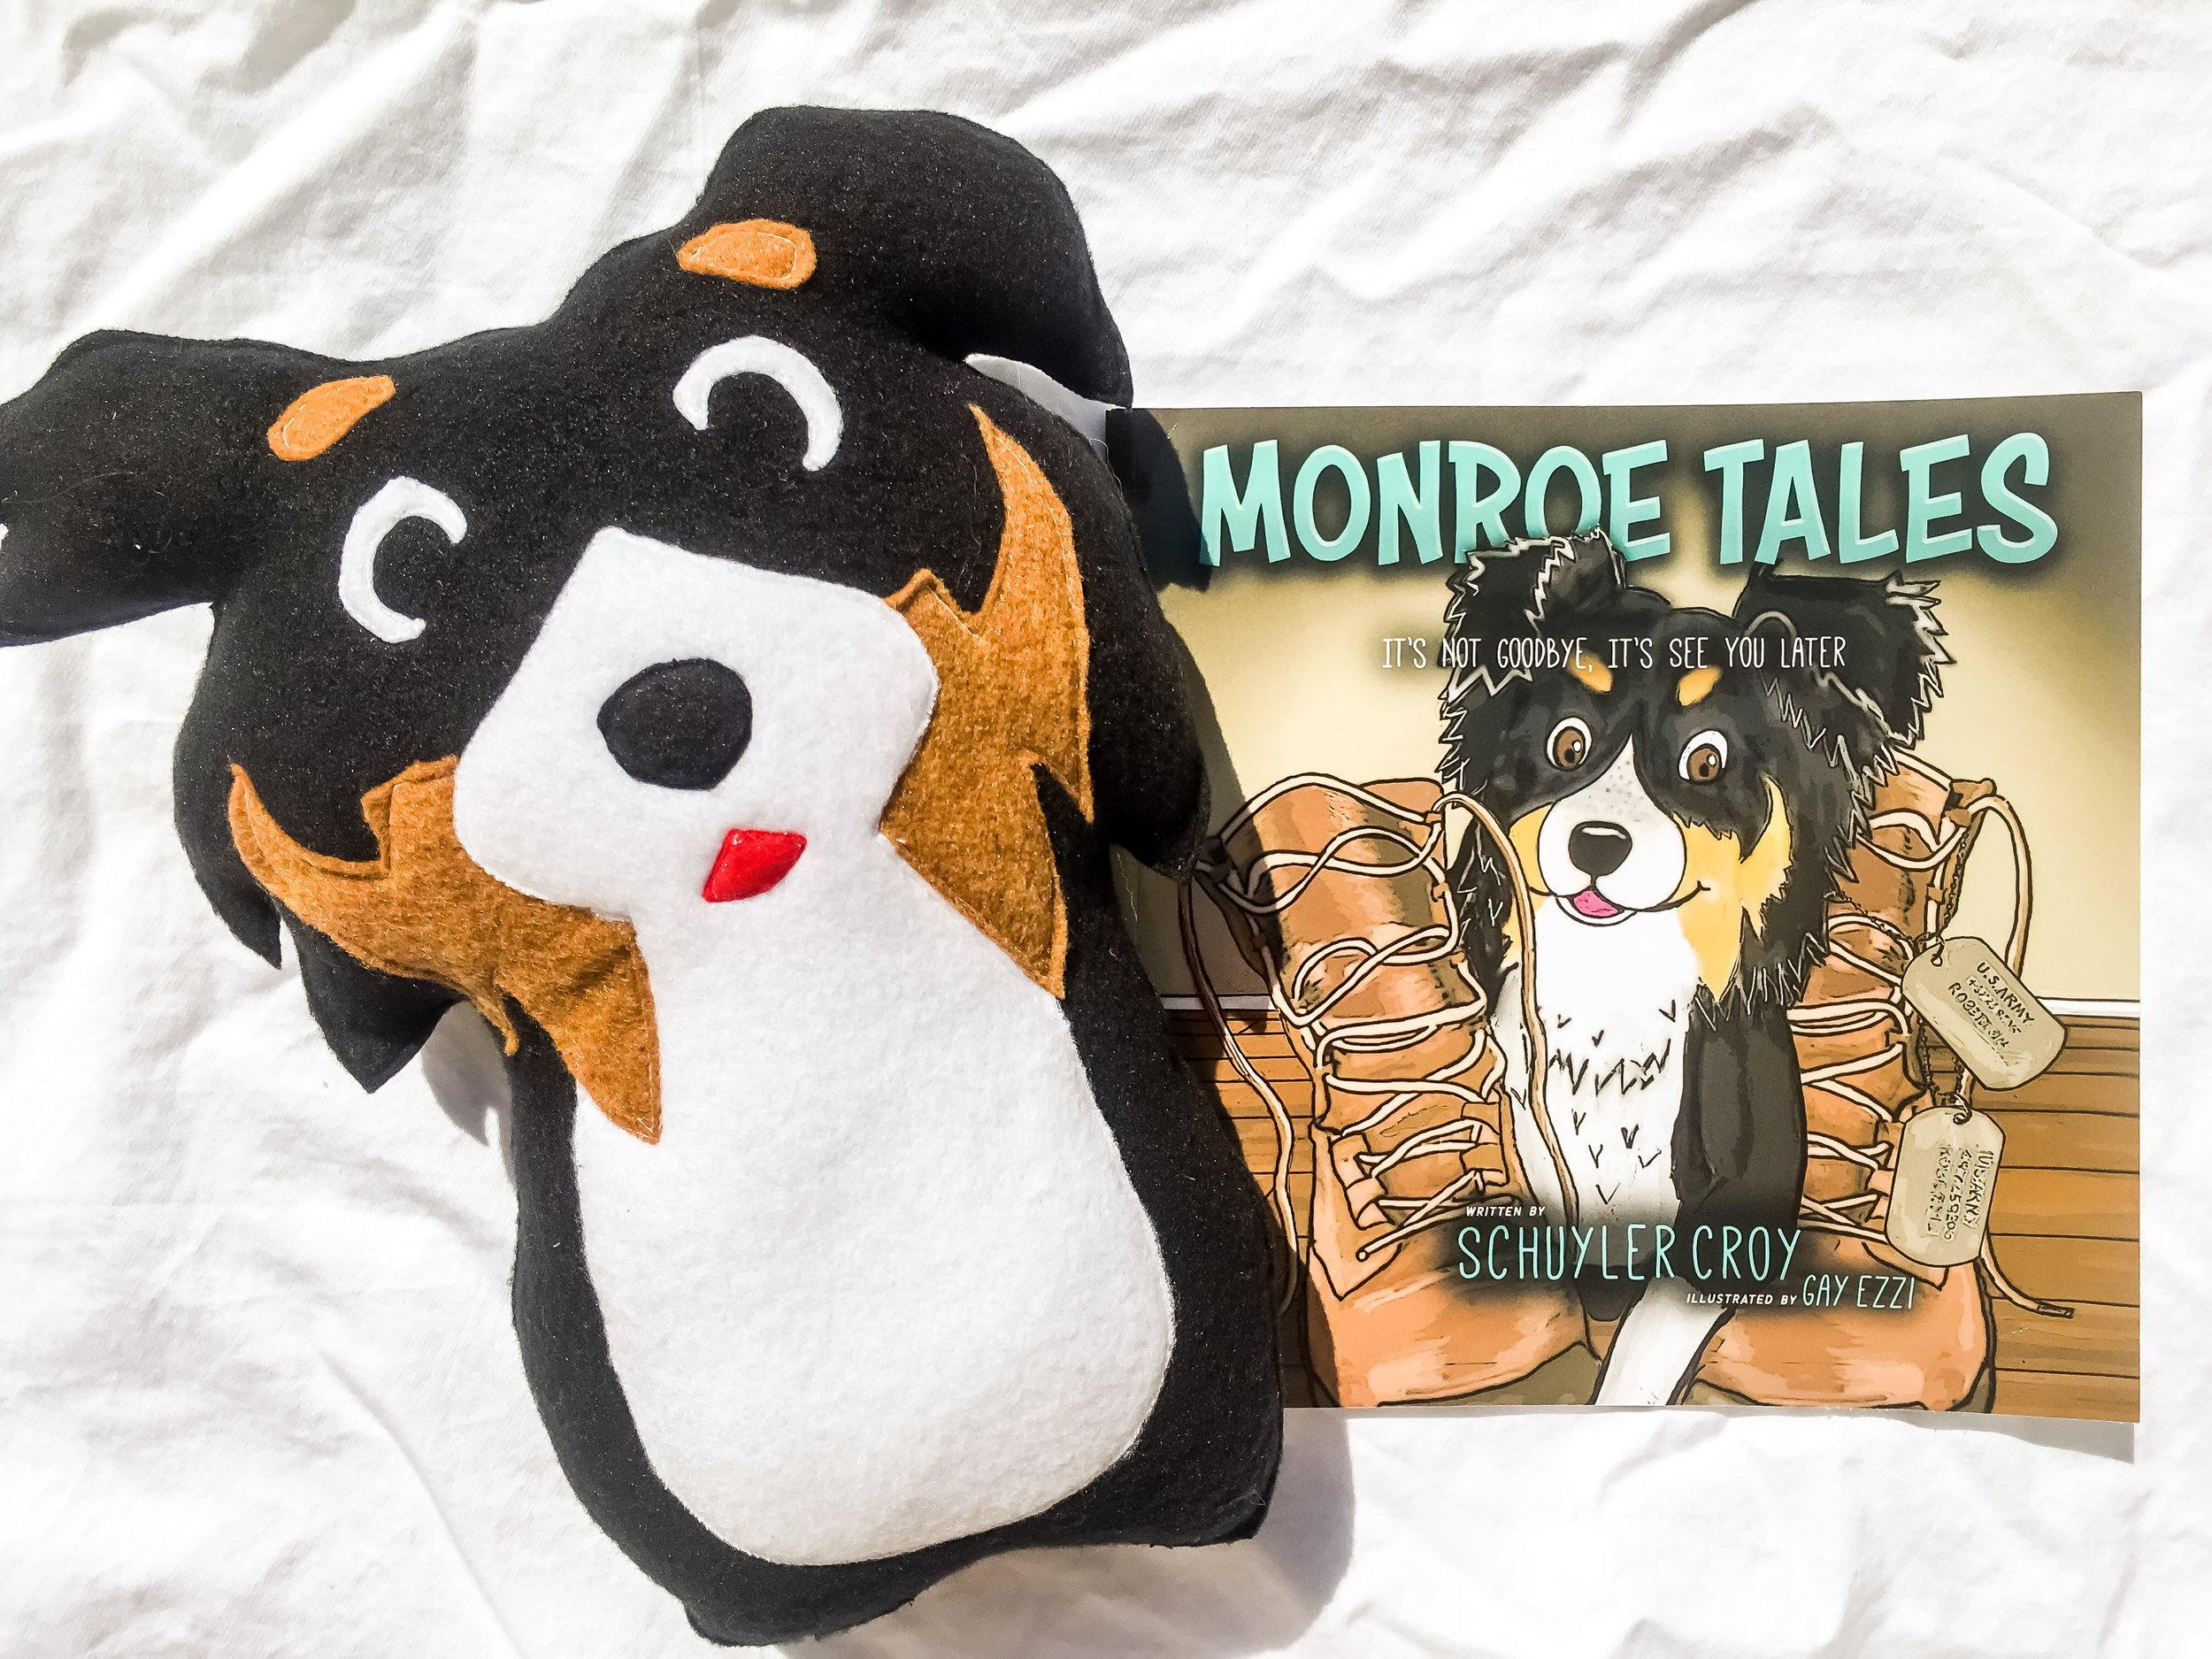 - Monroe's first story - Monroe Tales: It's Not Goodbye, It's See You Later is ready for you to read! Want to check it out?